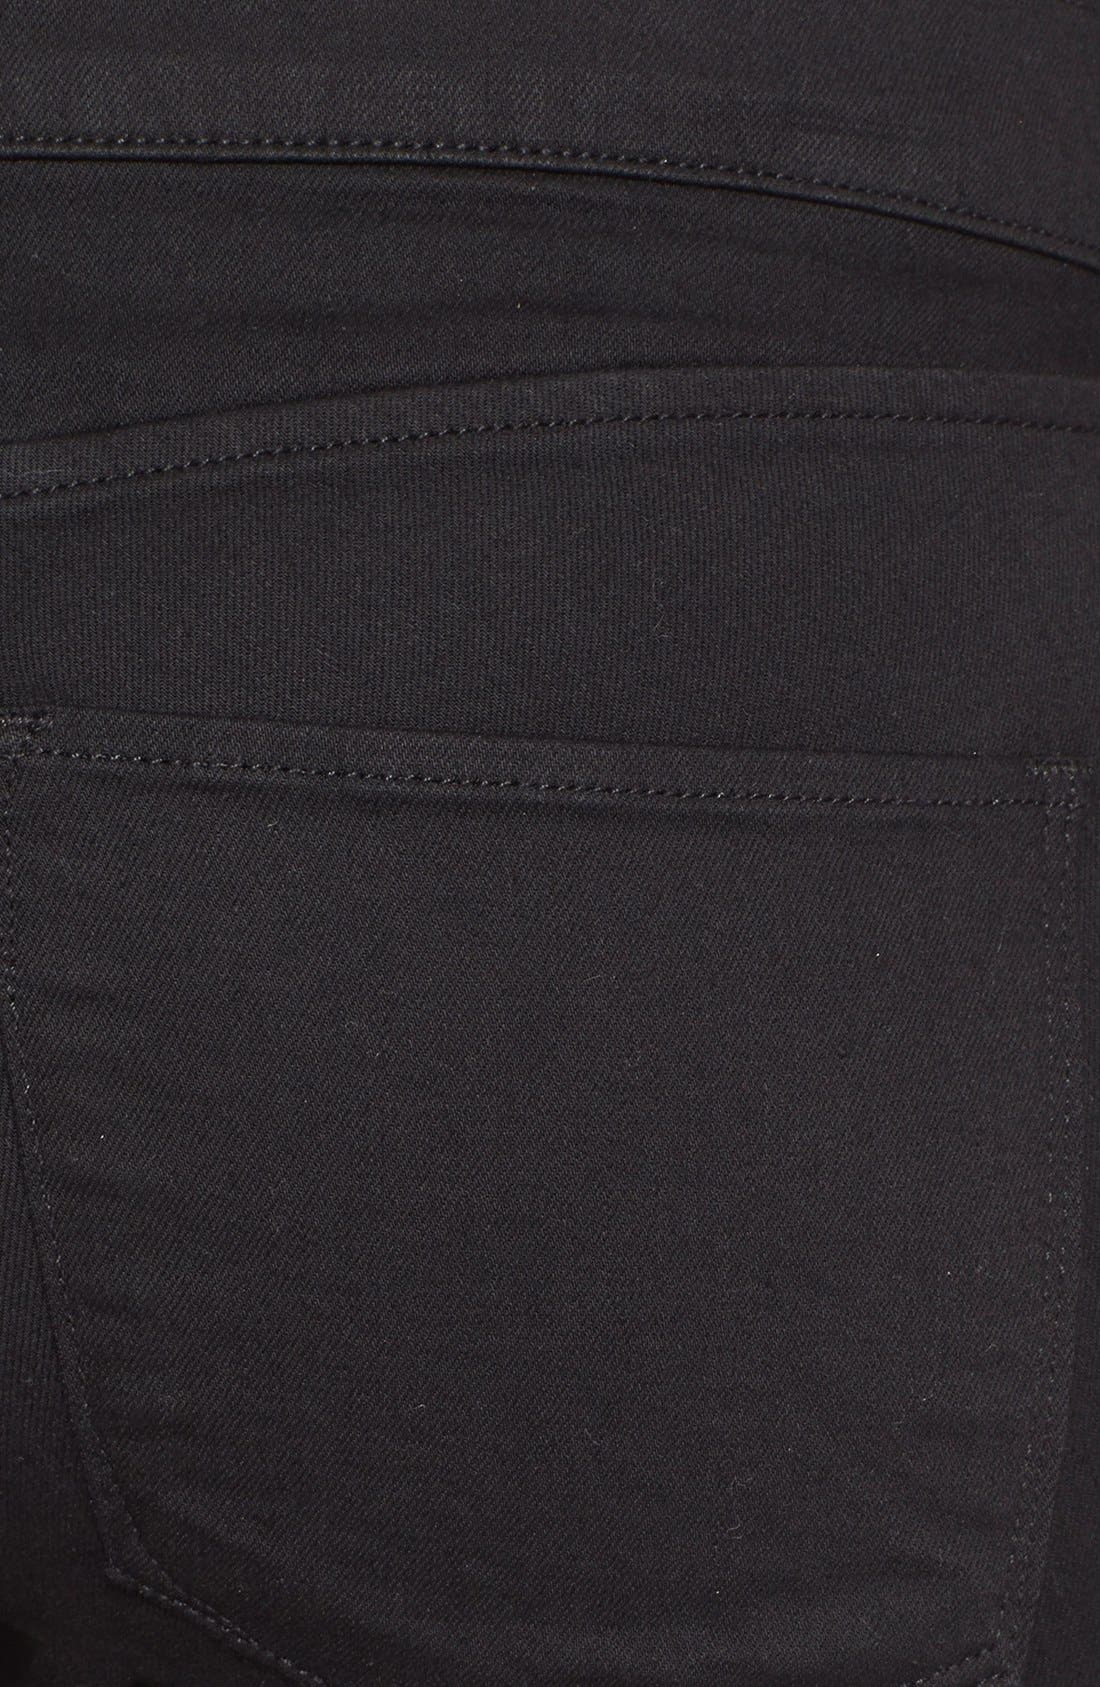 Alternate Image 3  - AYR 'The Skinny' Skinny Jeans (Jet Black)